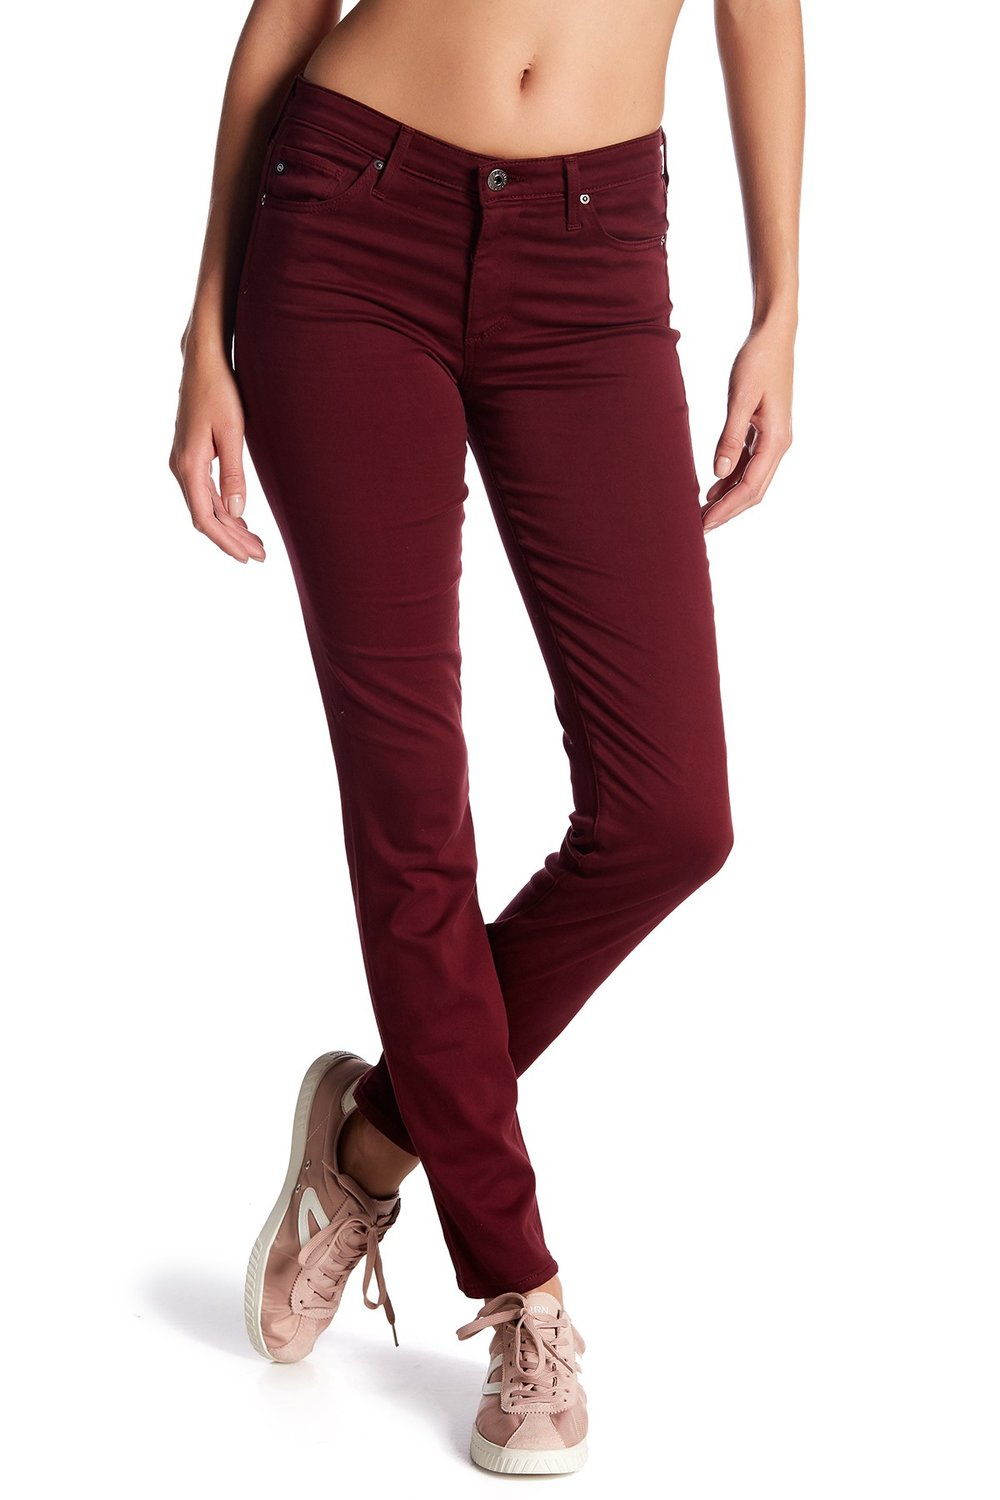 AG Prima Mid-Rise Cigarette Jeans. Nordstrom Rack. Was: $178. Now: $89.